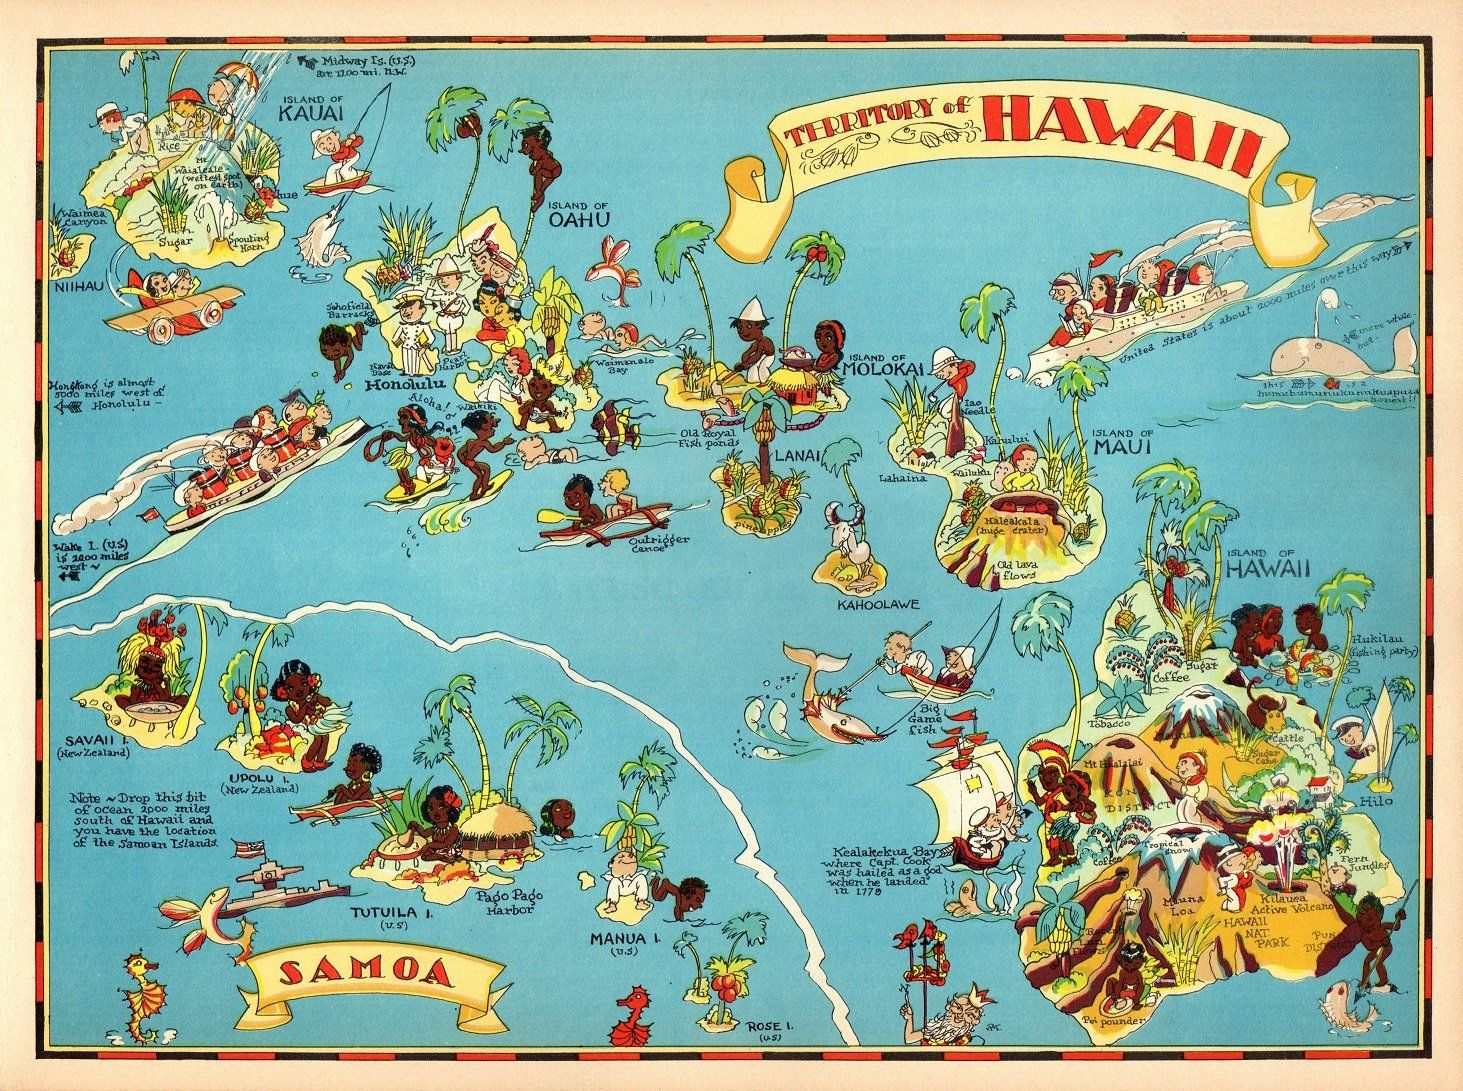 1930's Vintage Hawaii Picture Map State Cartoon Map Print ... on map of costa rica, map of hawaii, map of spain, map of malaysia, map of south pacific, map of bali, map of austrailia, map of fiji, map of brazil, map of bahamas, map of bora bora, map of kwajalein, map of moorea, map of carribean, map of switzerland, map of new zealand, map of thailand, map of french polynesia, map of pacific ocean, map of seychelles,